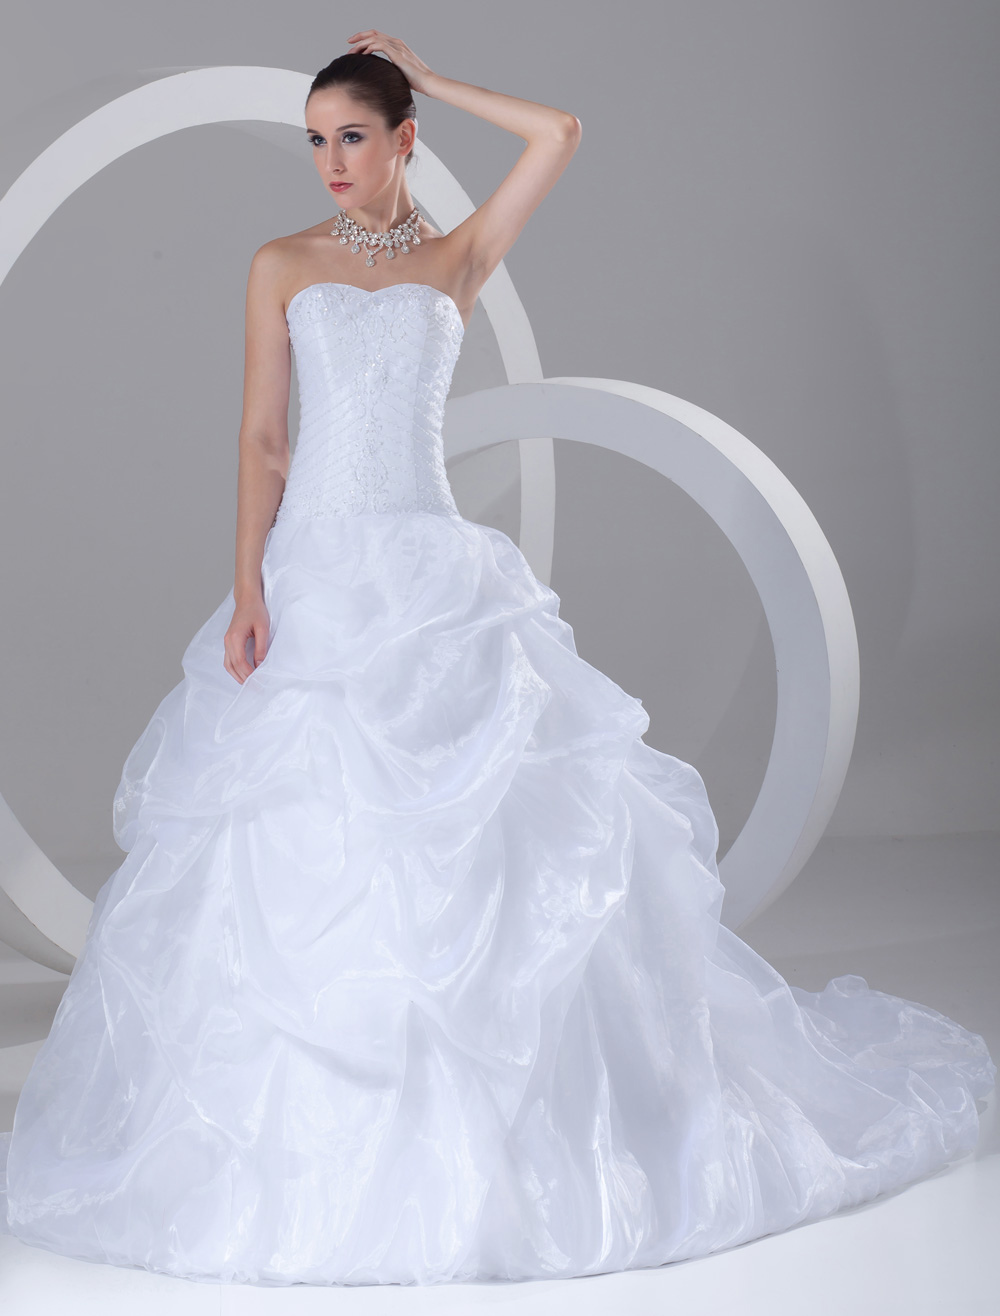 Chic A Line White Embroidered Organza Bridal Wedding Dress With Sweetheart Neck